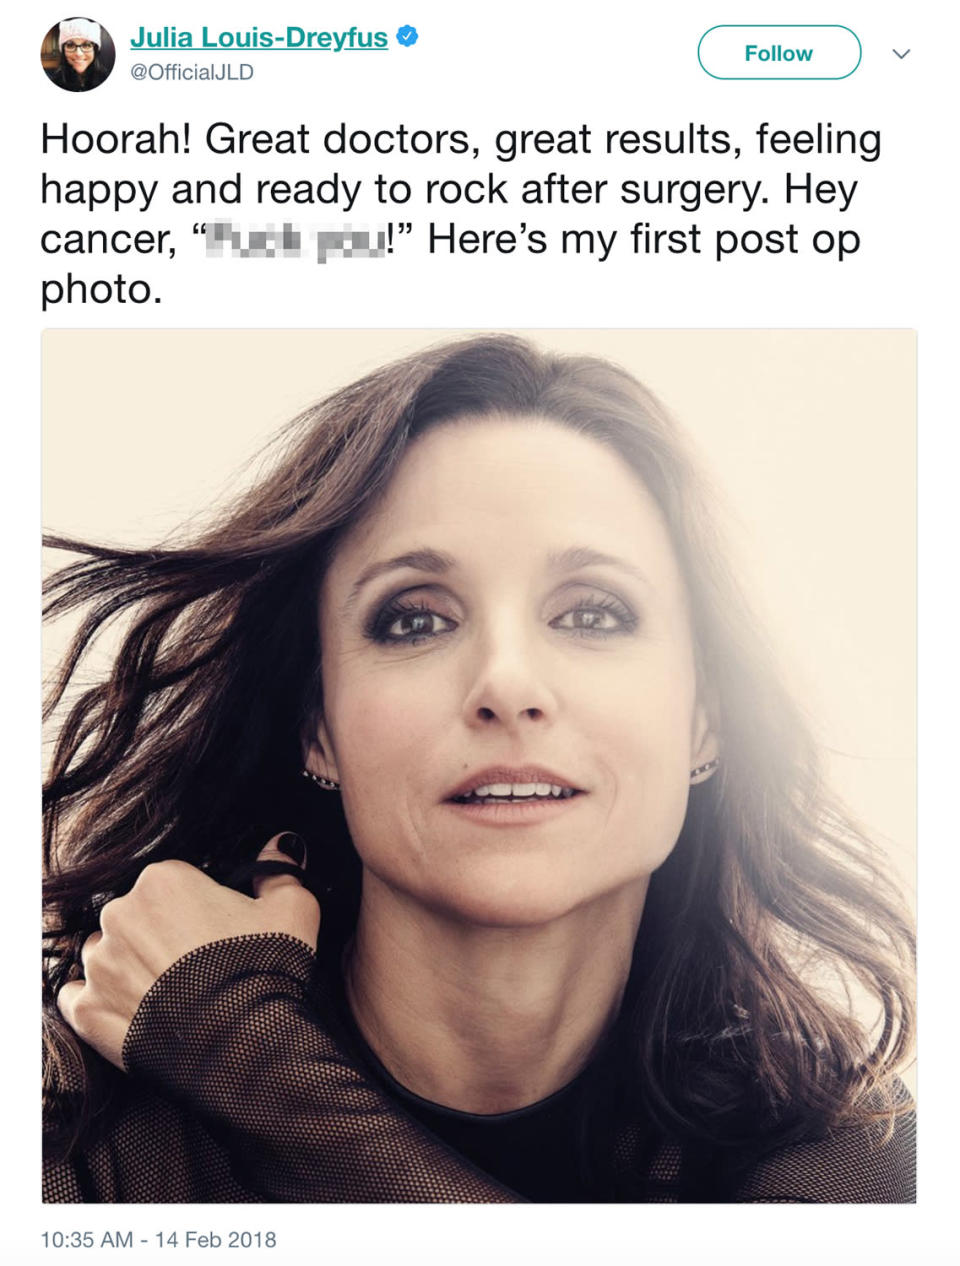 Photo: Julia Louis-Dreyfus via Twitter